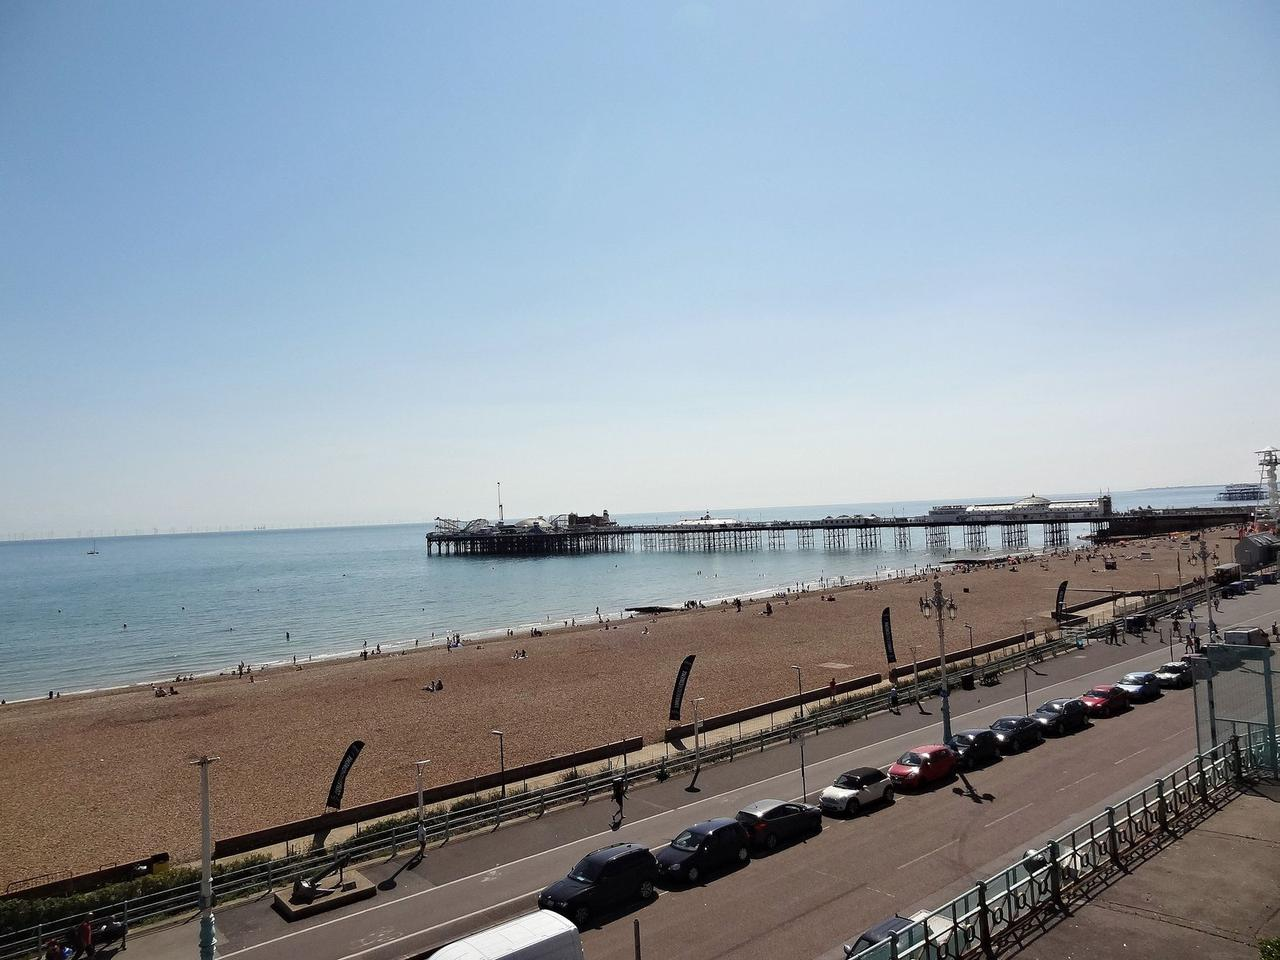 Beachfront Apartment, Brighton & Hove Images - 16